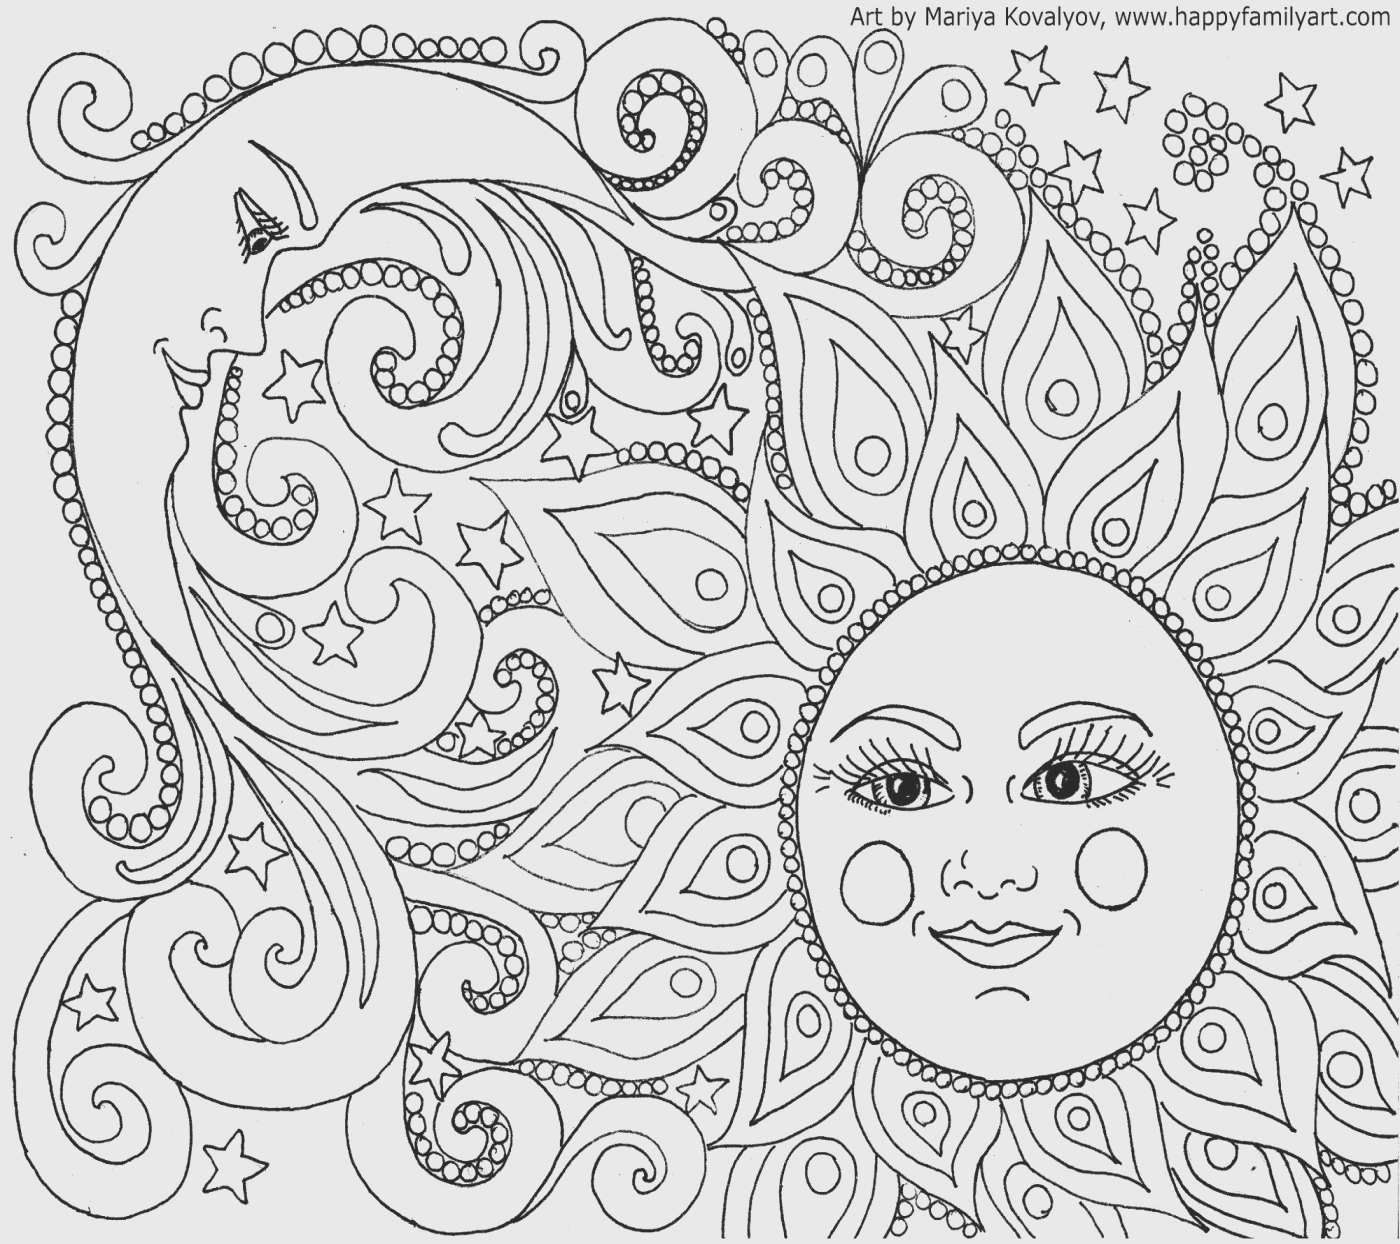 Coloring Pages Letter M New Jerboas Coloring Pages Gcssi Coloring Pages Di 2020 Disney Drawings Wallpaper Iphone